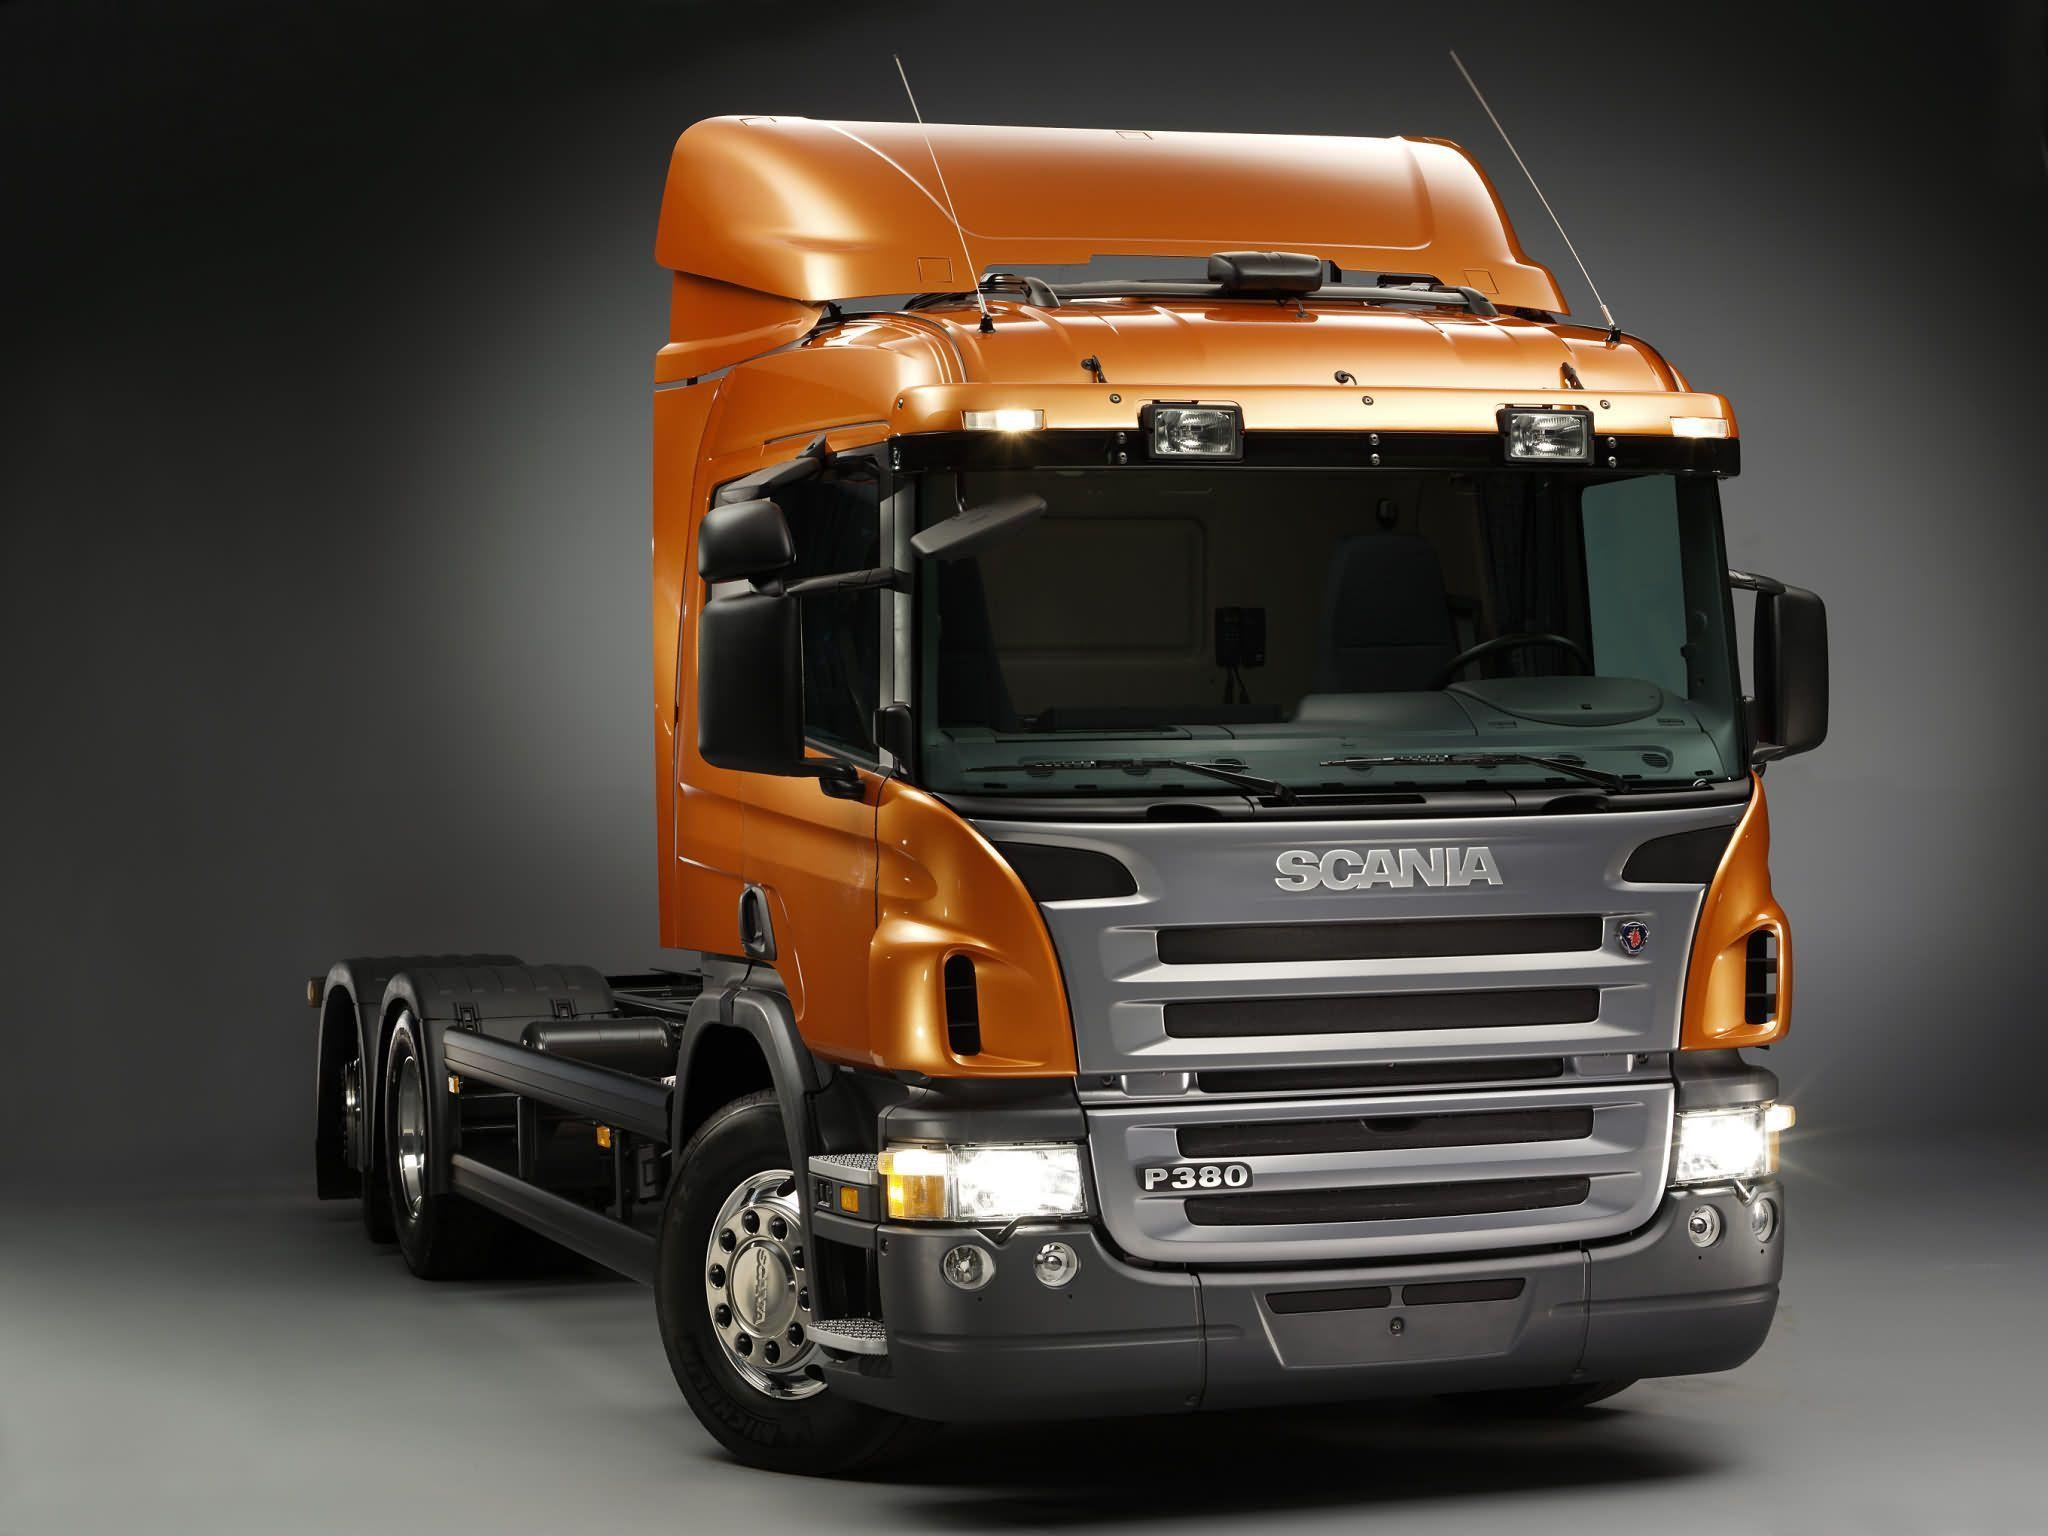 Scania Trucks Wallpapers - Wallpaper Cave